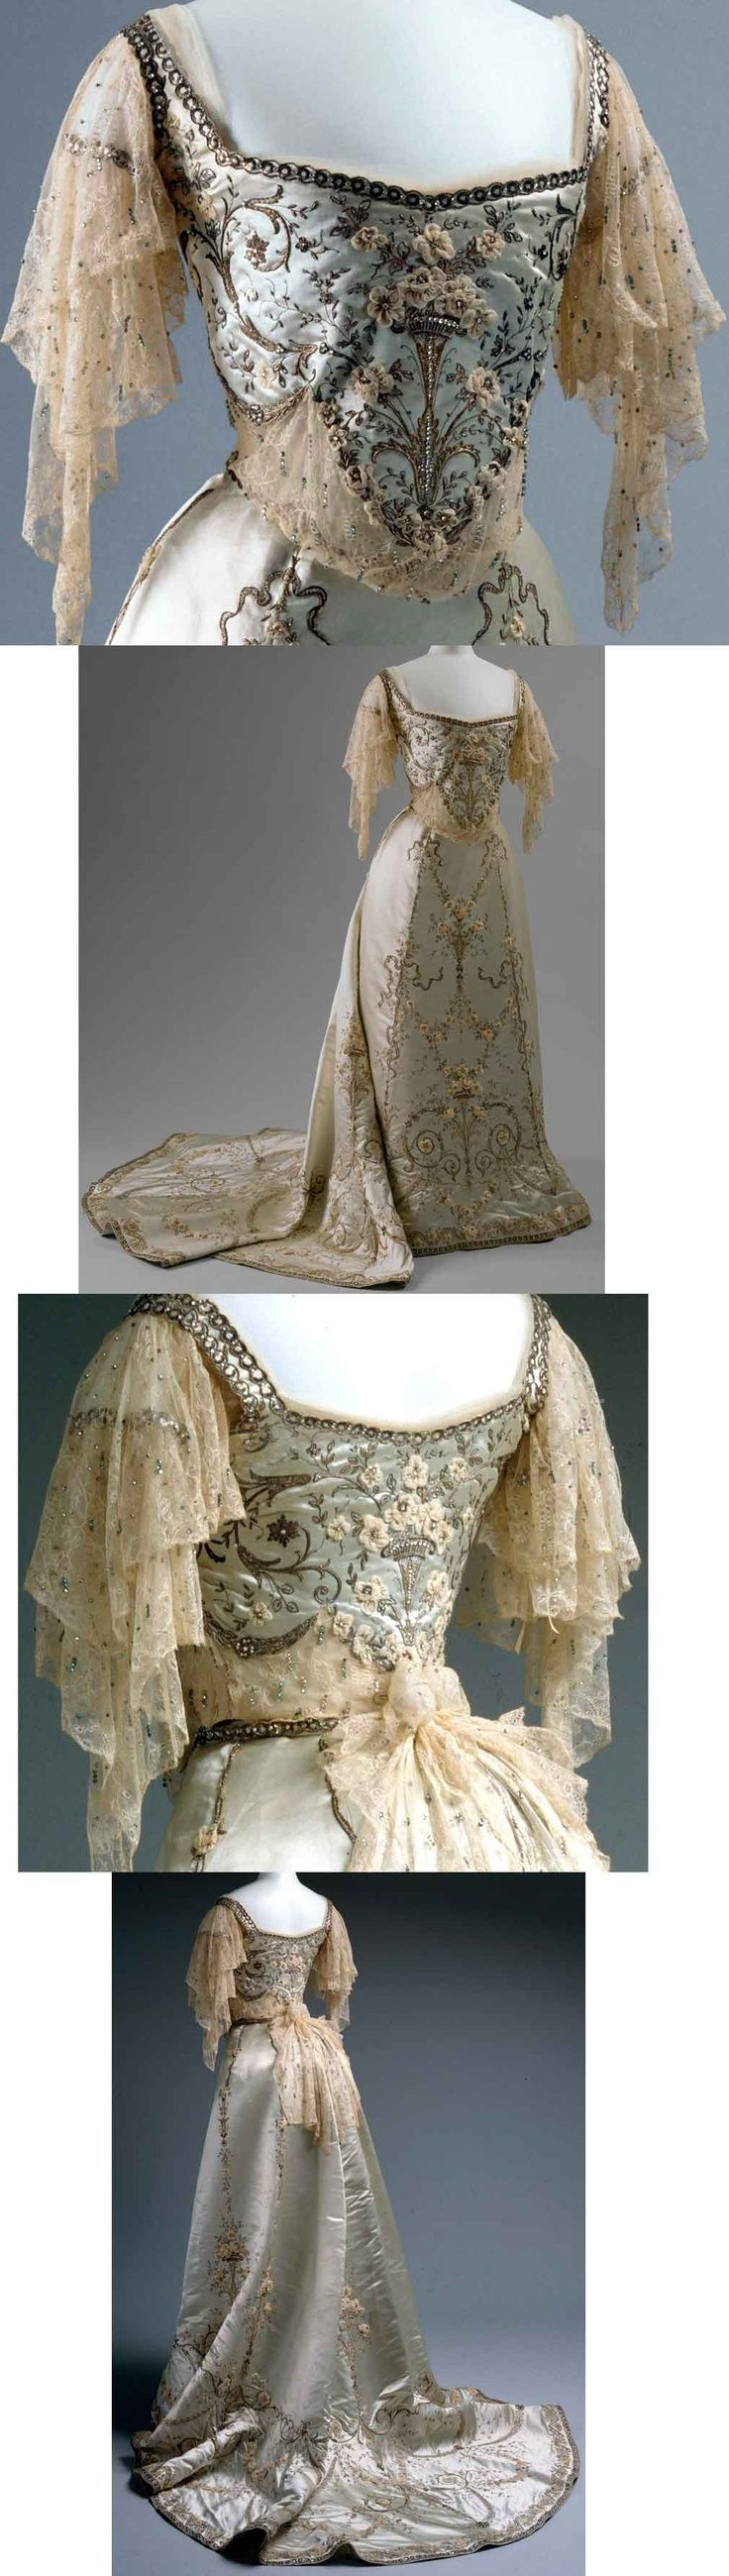 It's a tie this week - two lovely dresses, each elegant in its own way. I can't decide which to post so I'm just going to share them both. Enjoy!! Now, we go from 1903-ish silk and cotton to 1879 s...